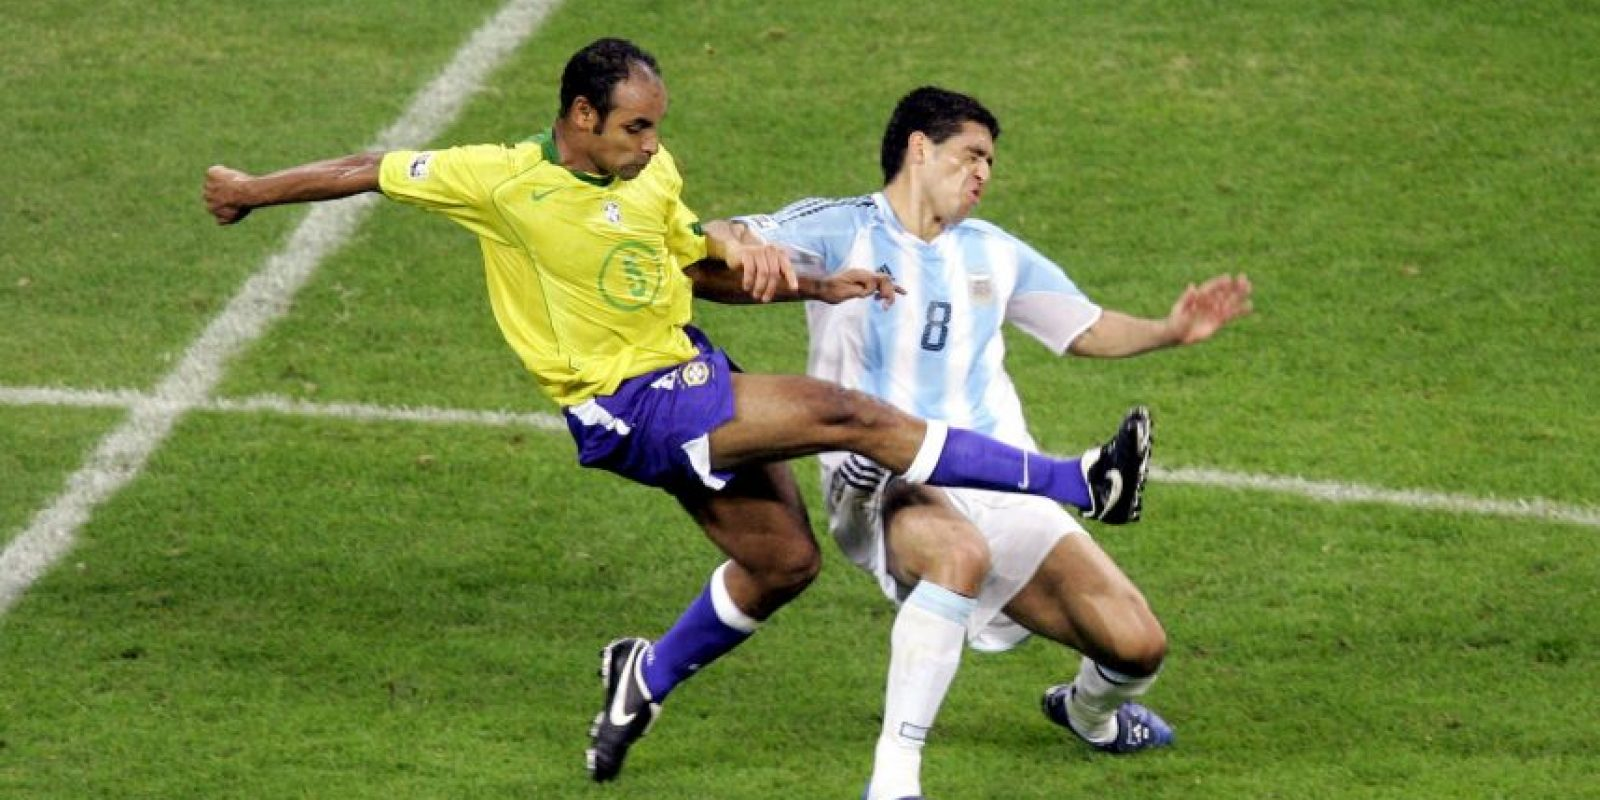 Saltamos a 2005, final de la Copa Confederaciones Foto: Getty Images